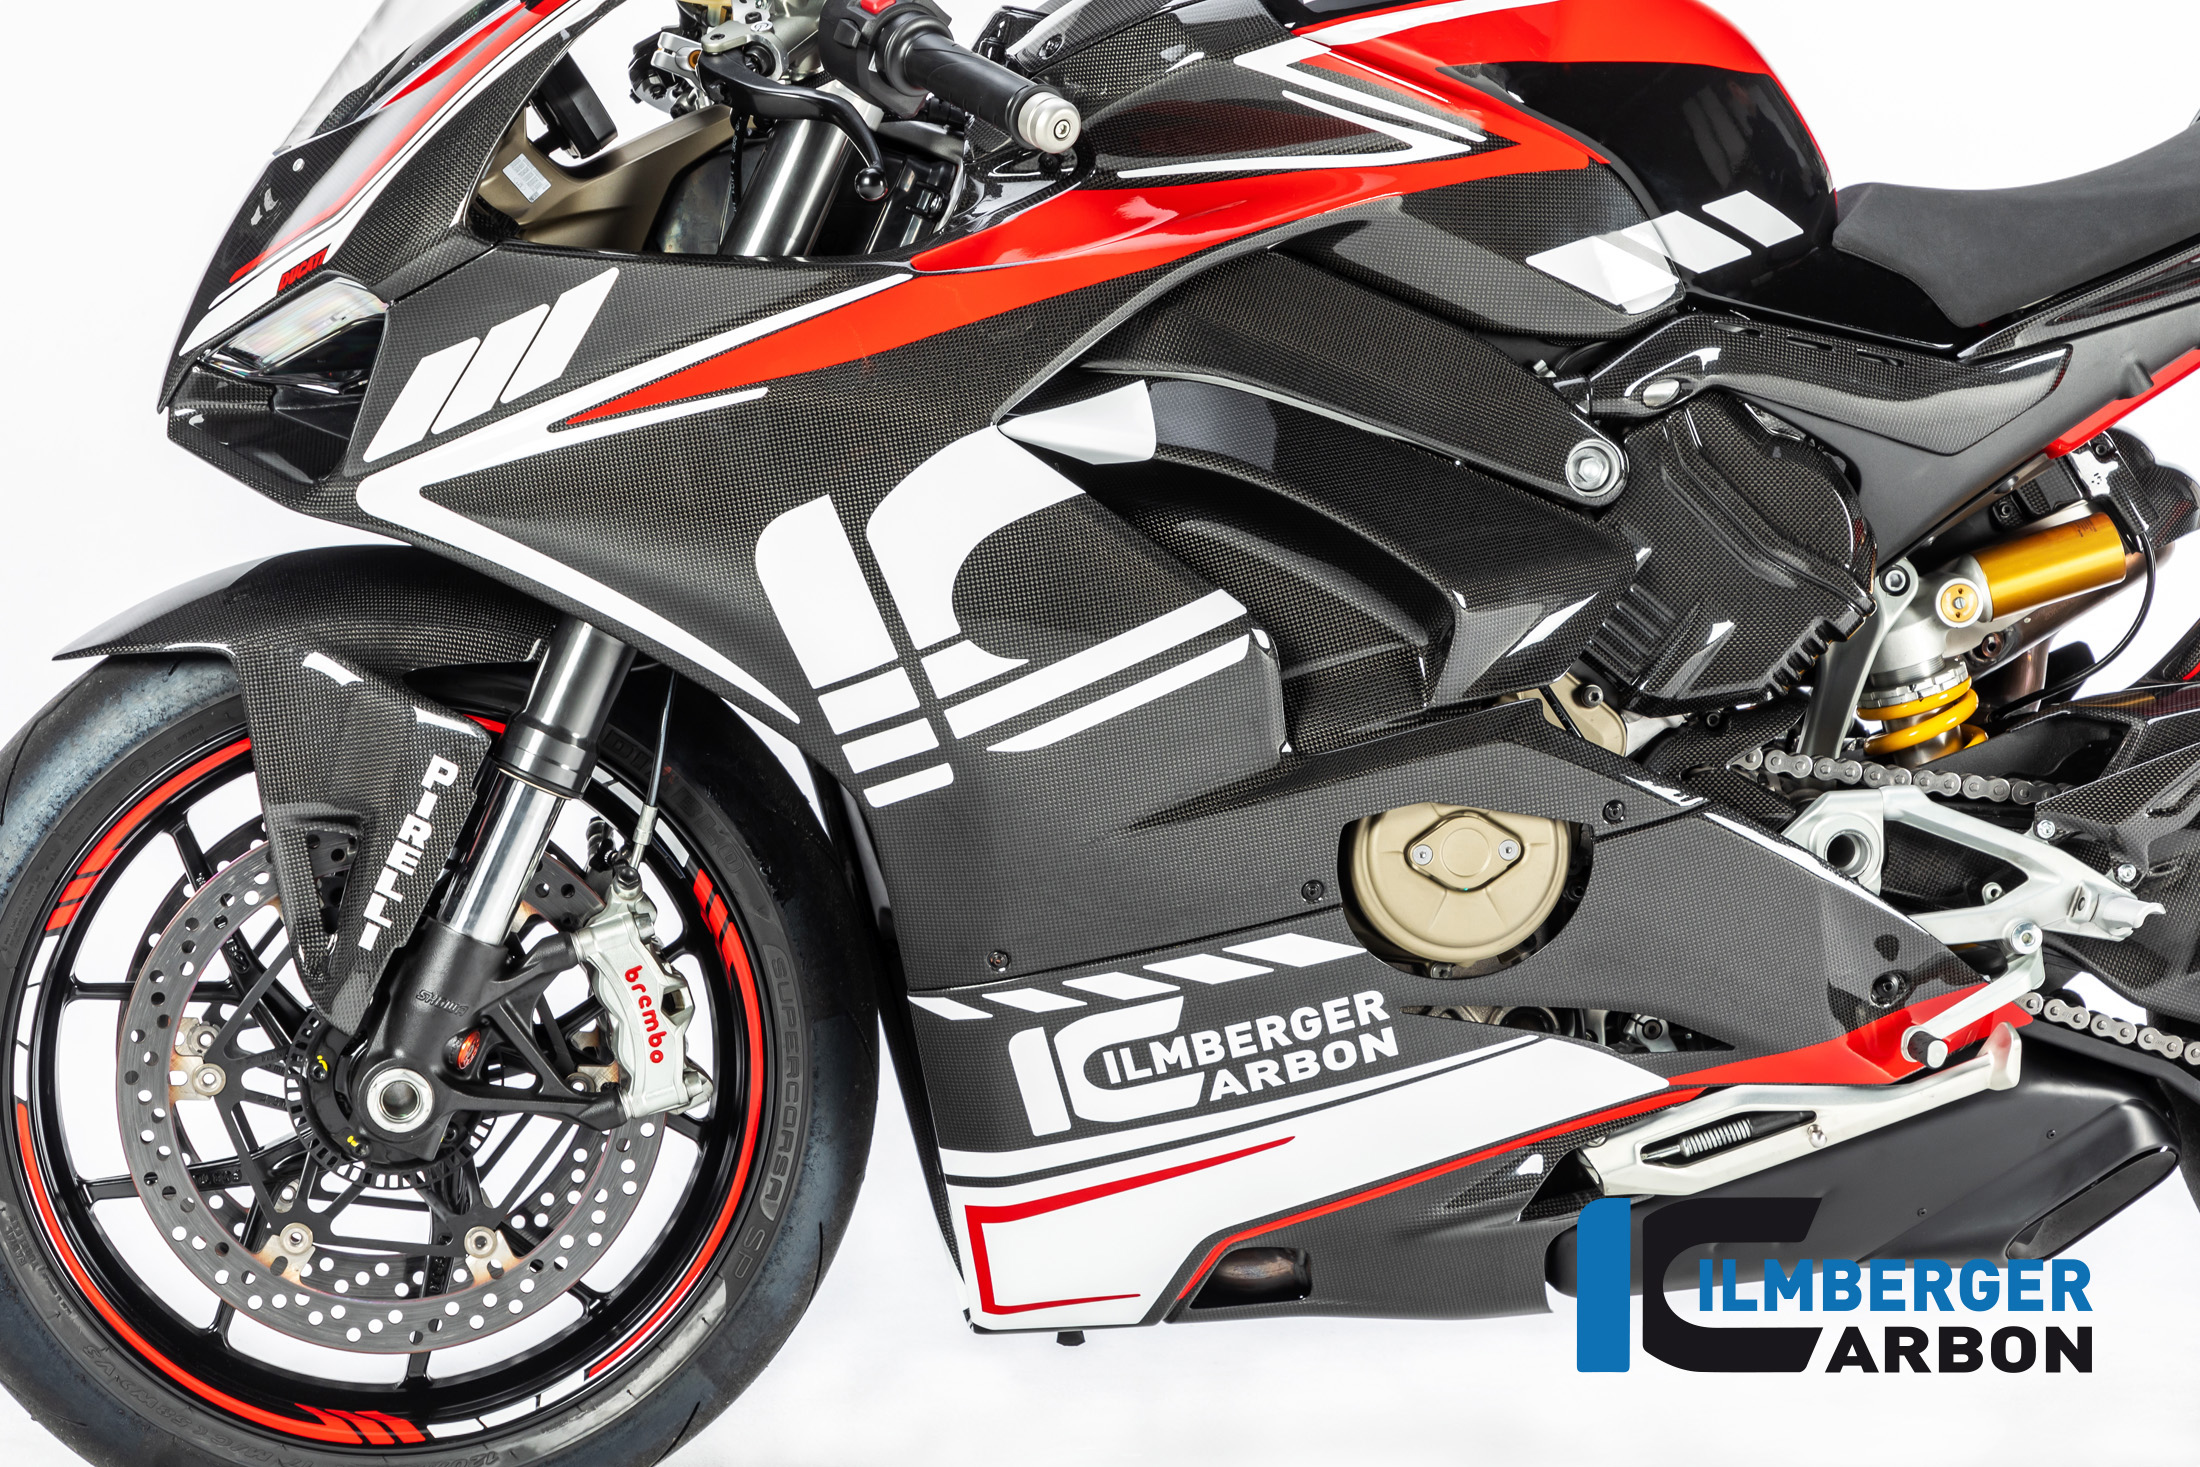 Ducati_Panigale_V4_Carbon_Ilmberger